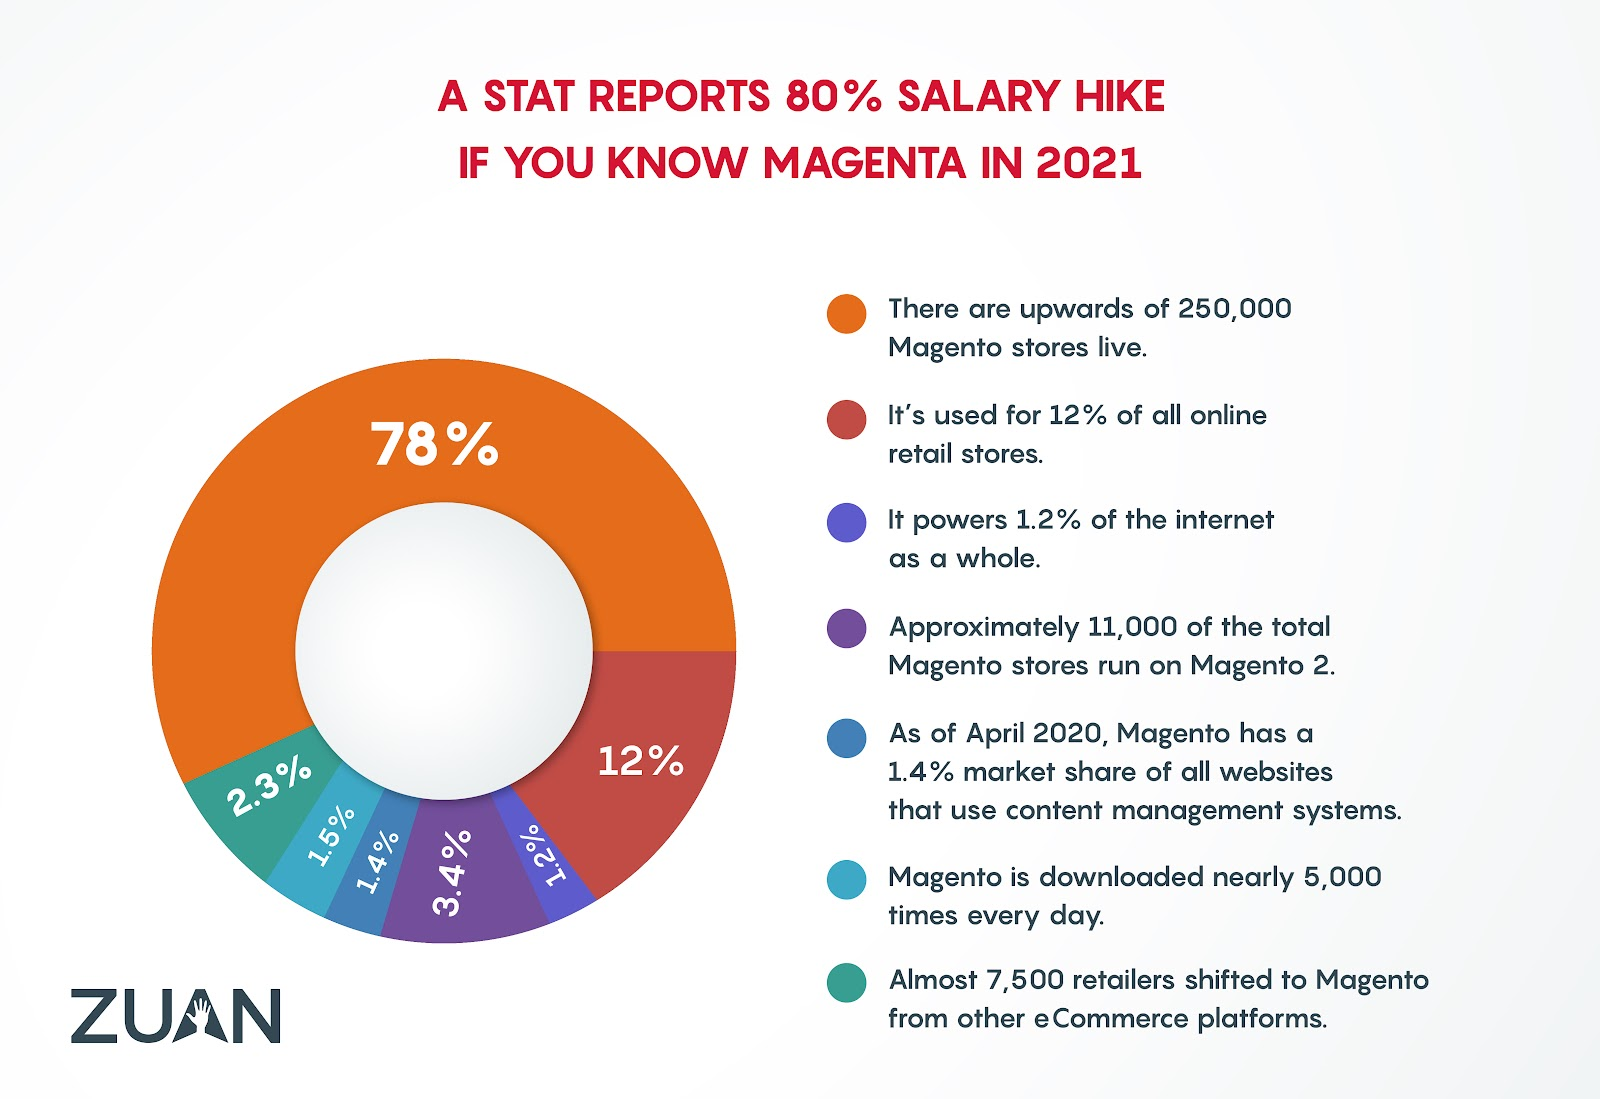 magento-stats-report-2021.png